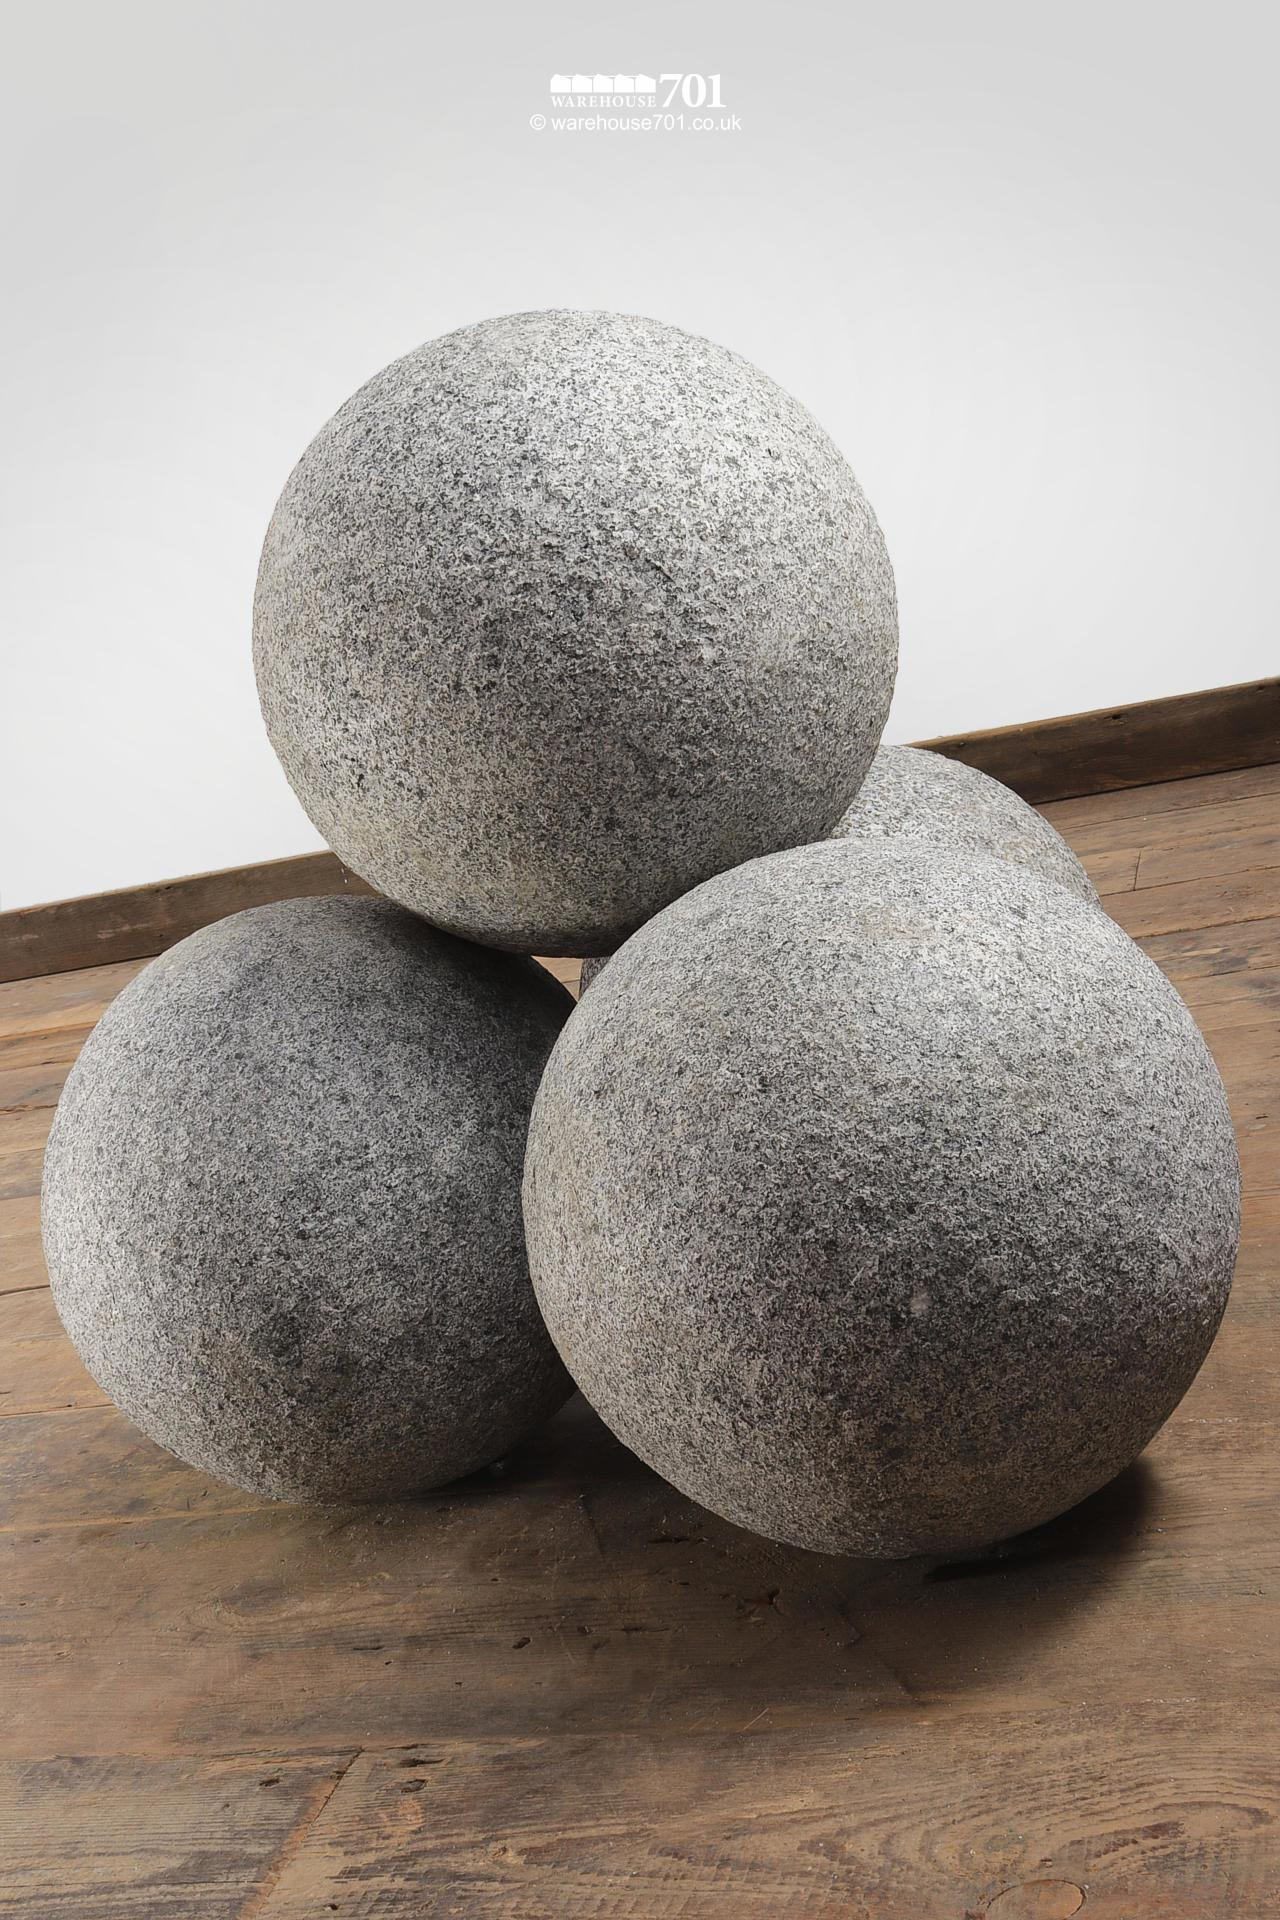 Granite Balls or Stone Spheres for Gate Pillars and Gardens #2